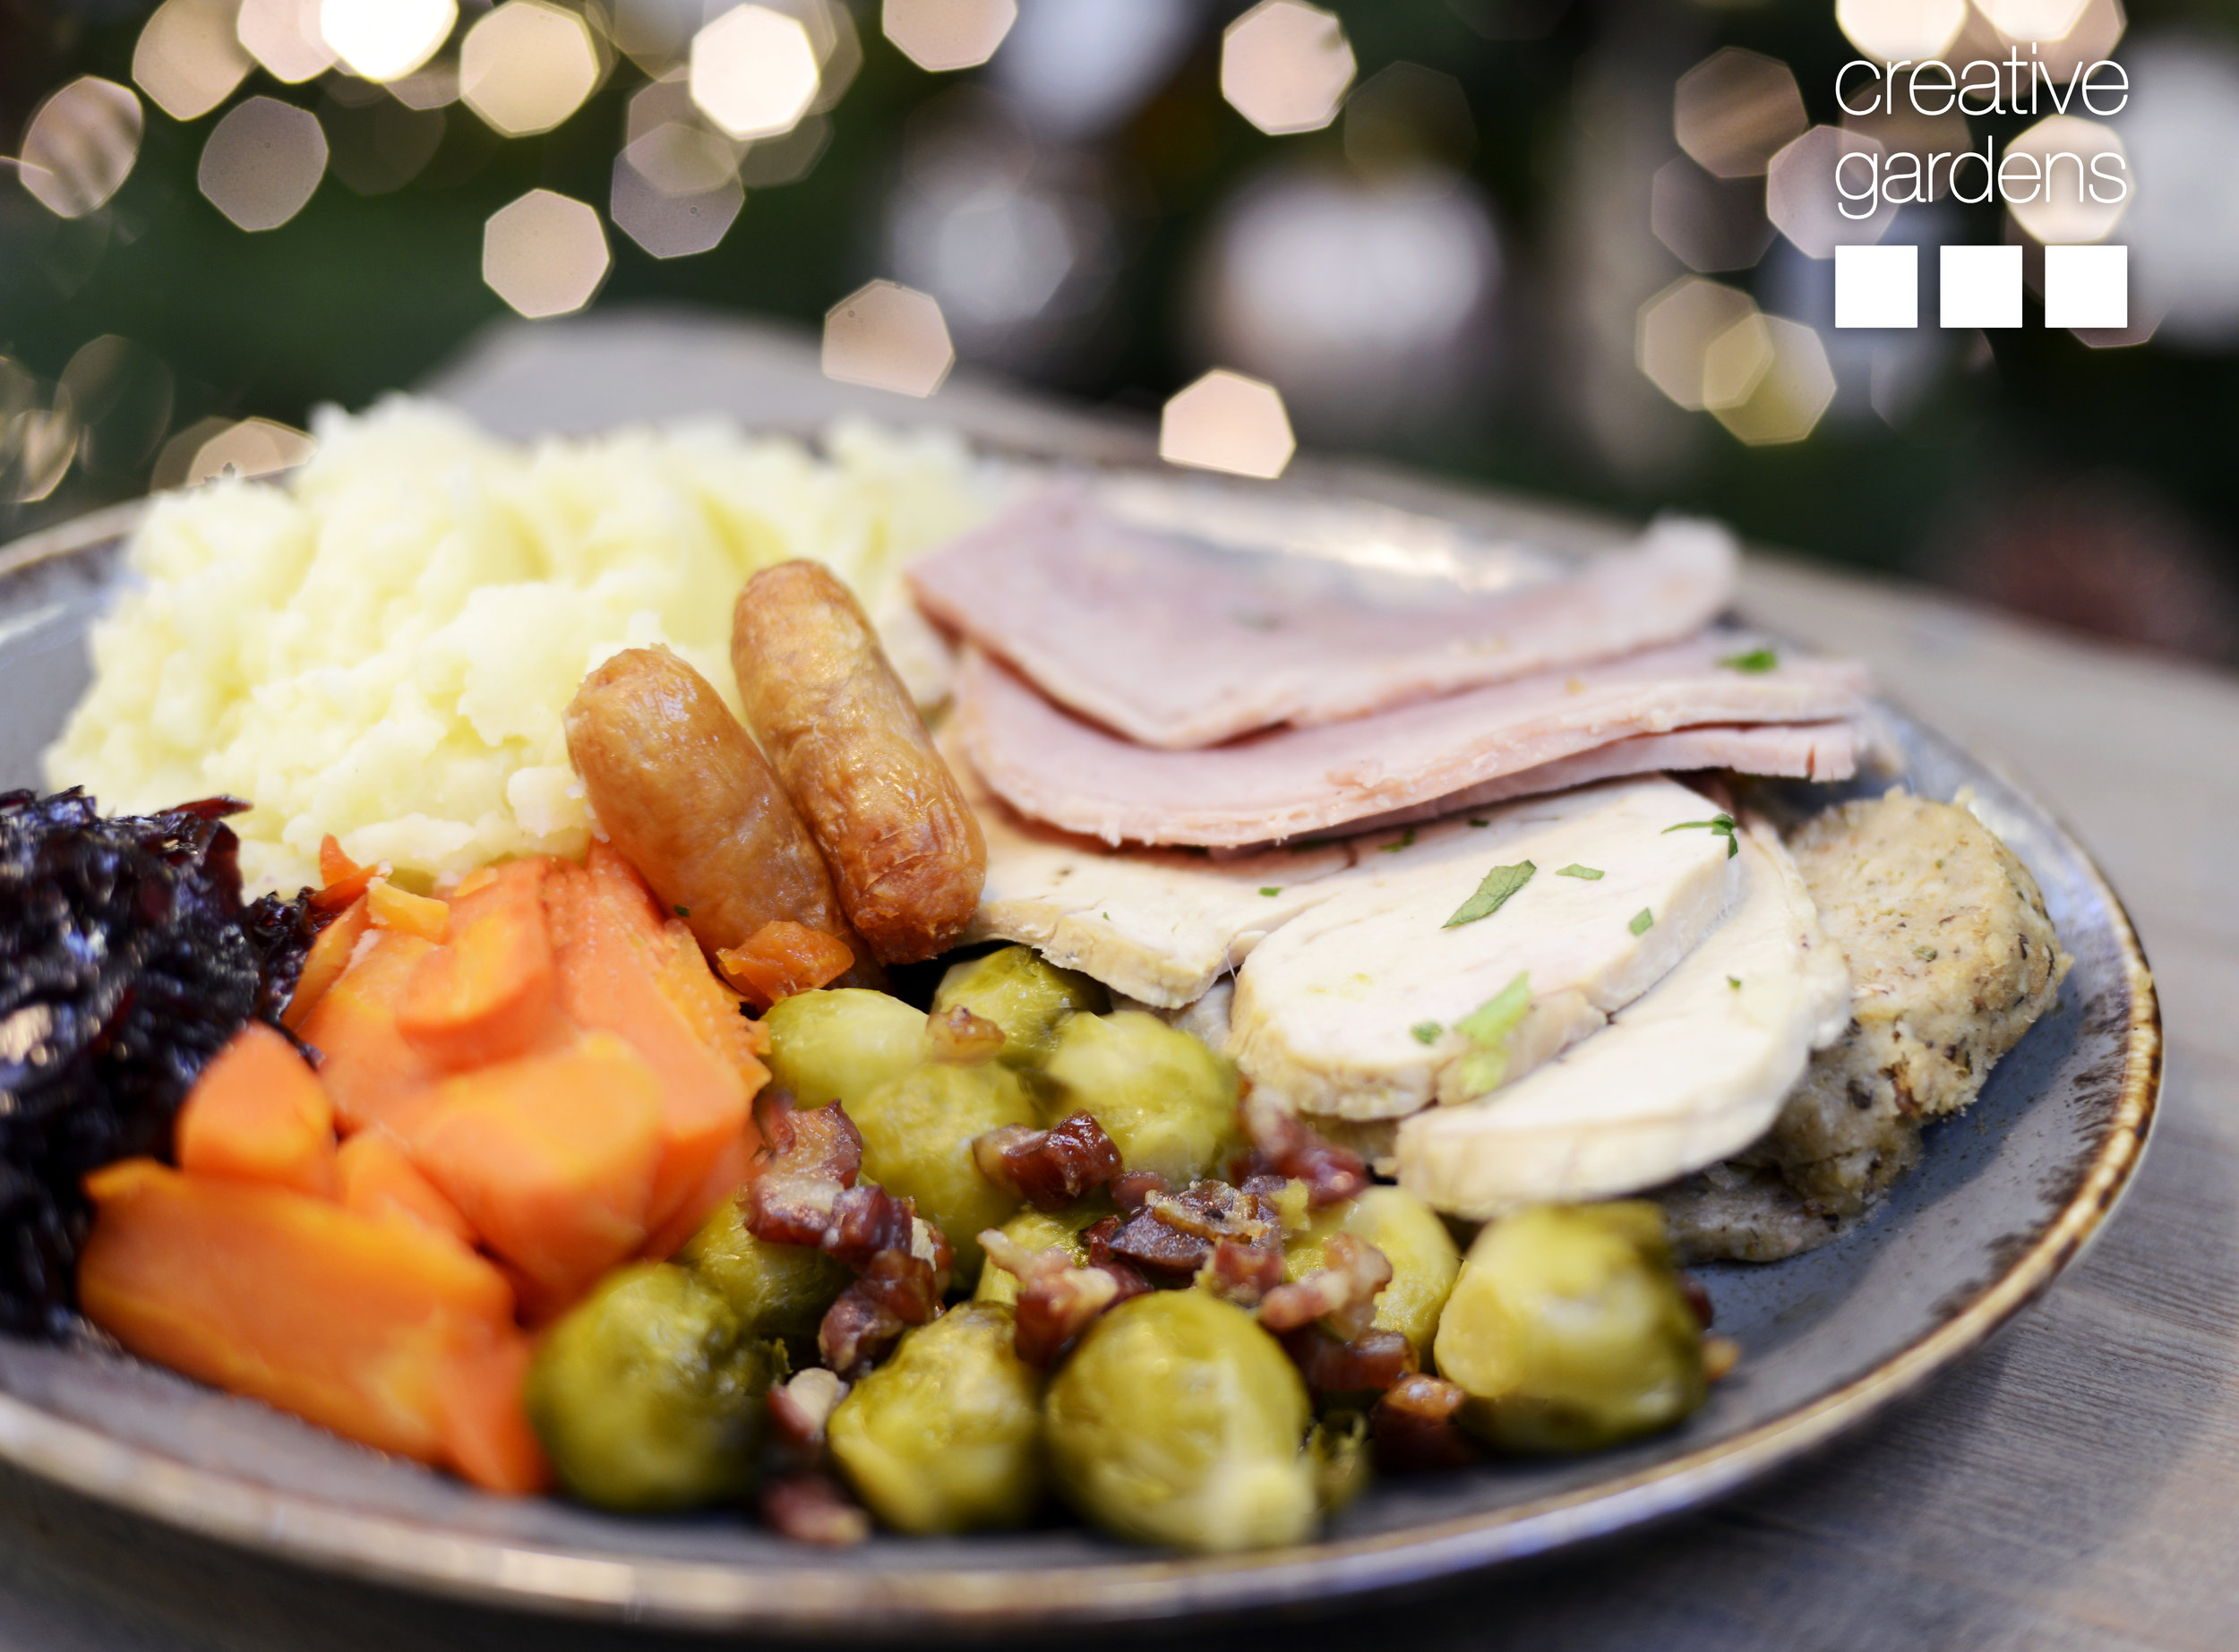 Christmas dinner - Have you tried our delicious Christmas dinner yet with Northern Irish turkey and ham? Served daily from 12.00–14.30 (12.30 on Sundays) and 17.00–19.30 on Thursday and Friday evenings in Donaghadee and Galgorm and Friday evenings only on Bushmills!